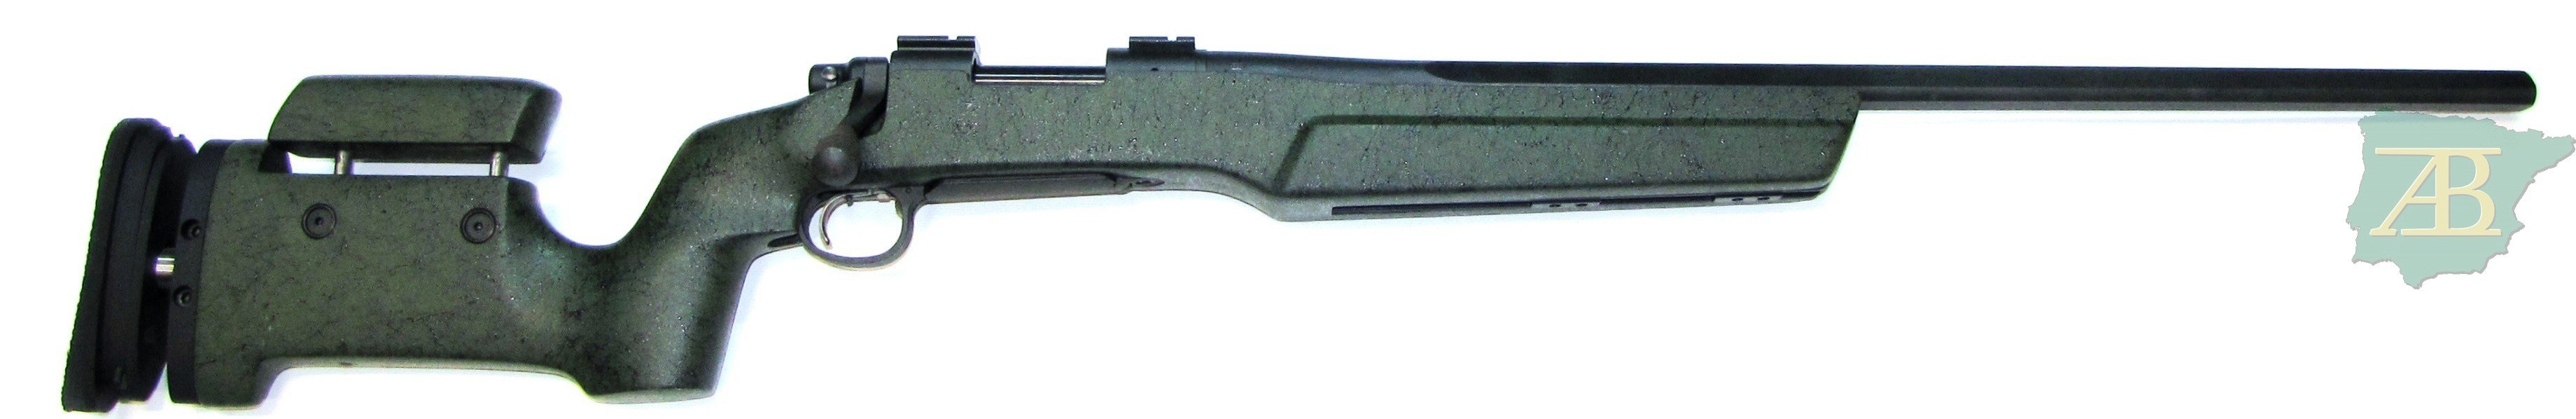 RIFLE DE CERROJO DE TIRO REMINGTON .308 WIN Ref. 4868